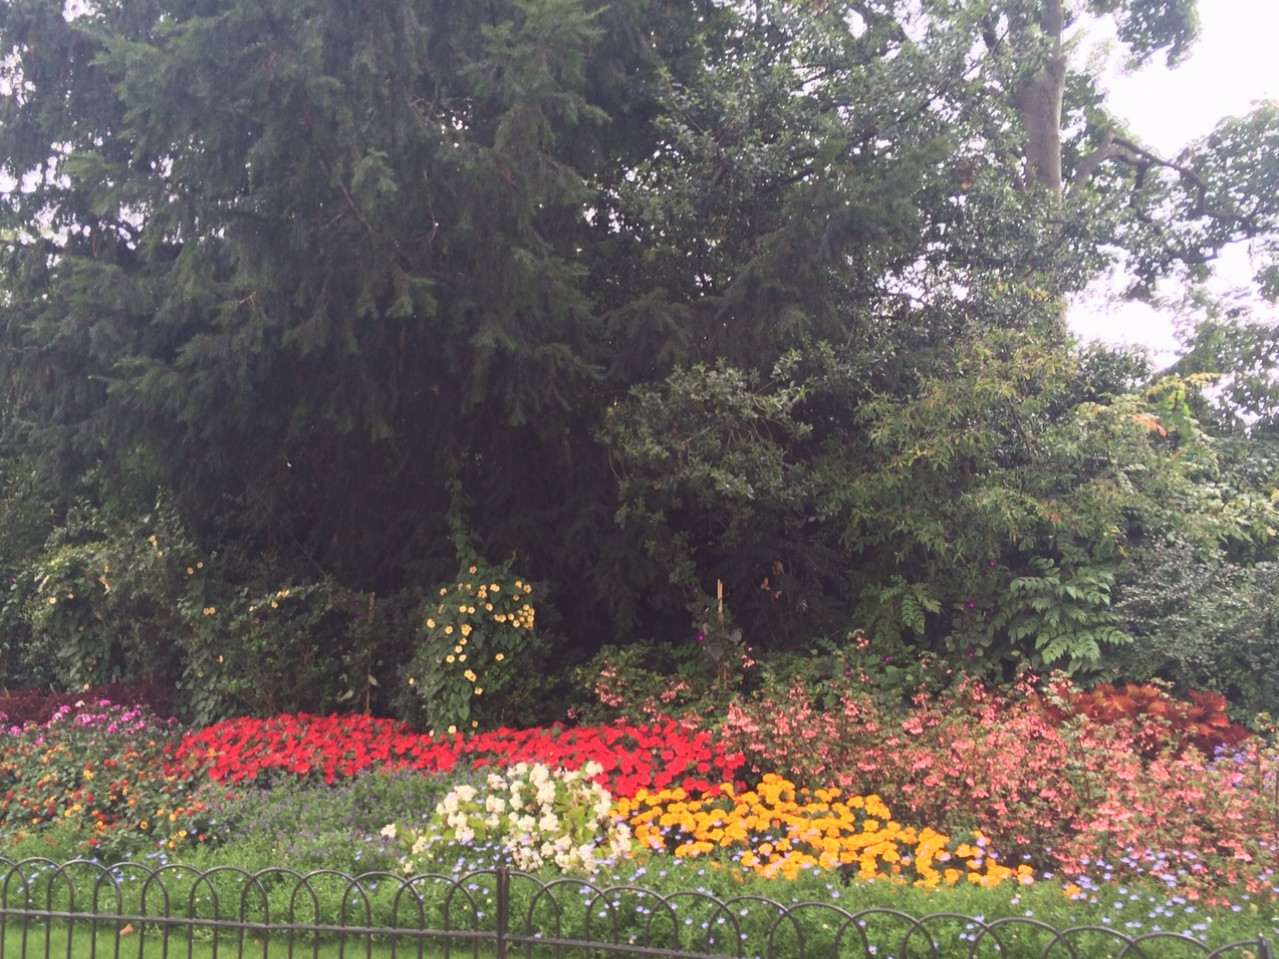 Outer border of St. James Park.